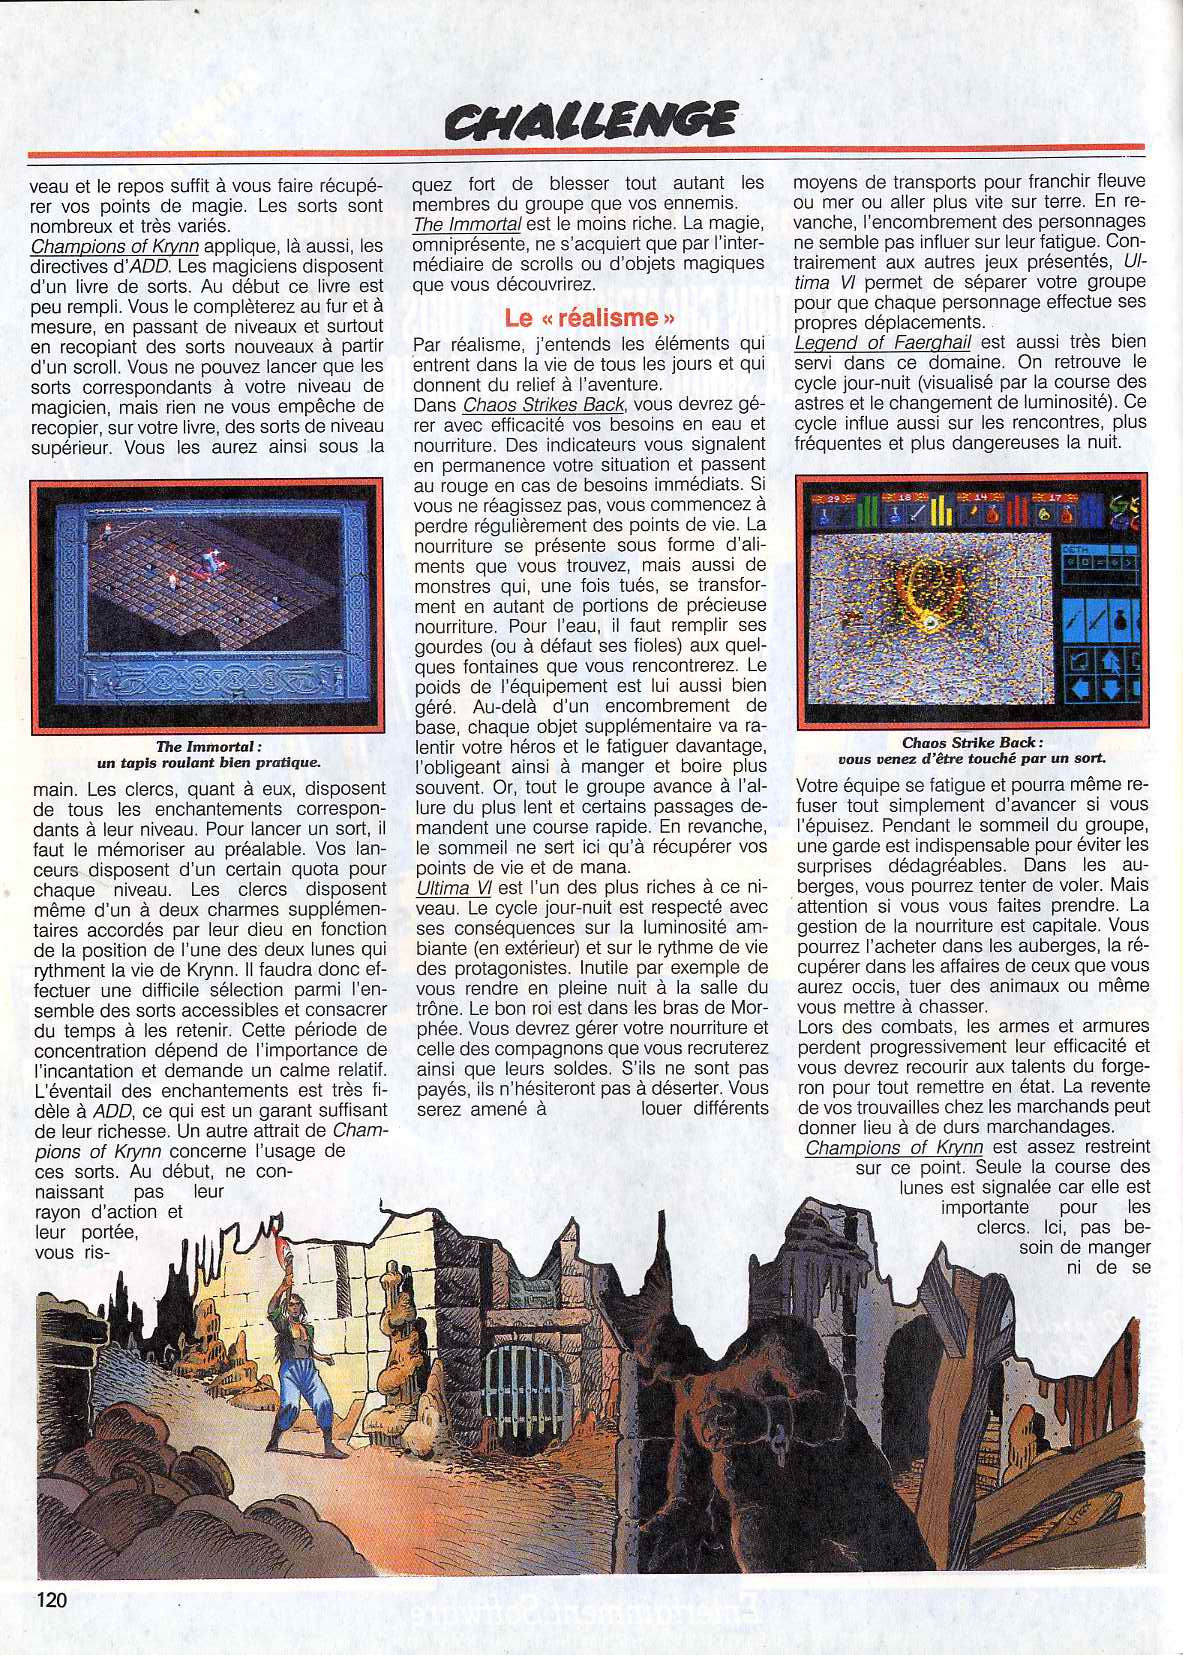 Chaos Strikes Back Article published in French magazine 'Tilt', Issue #83 November 1990, Page 120